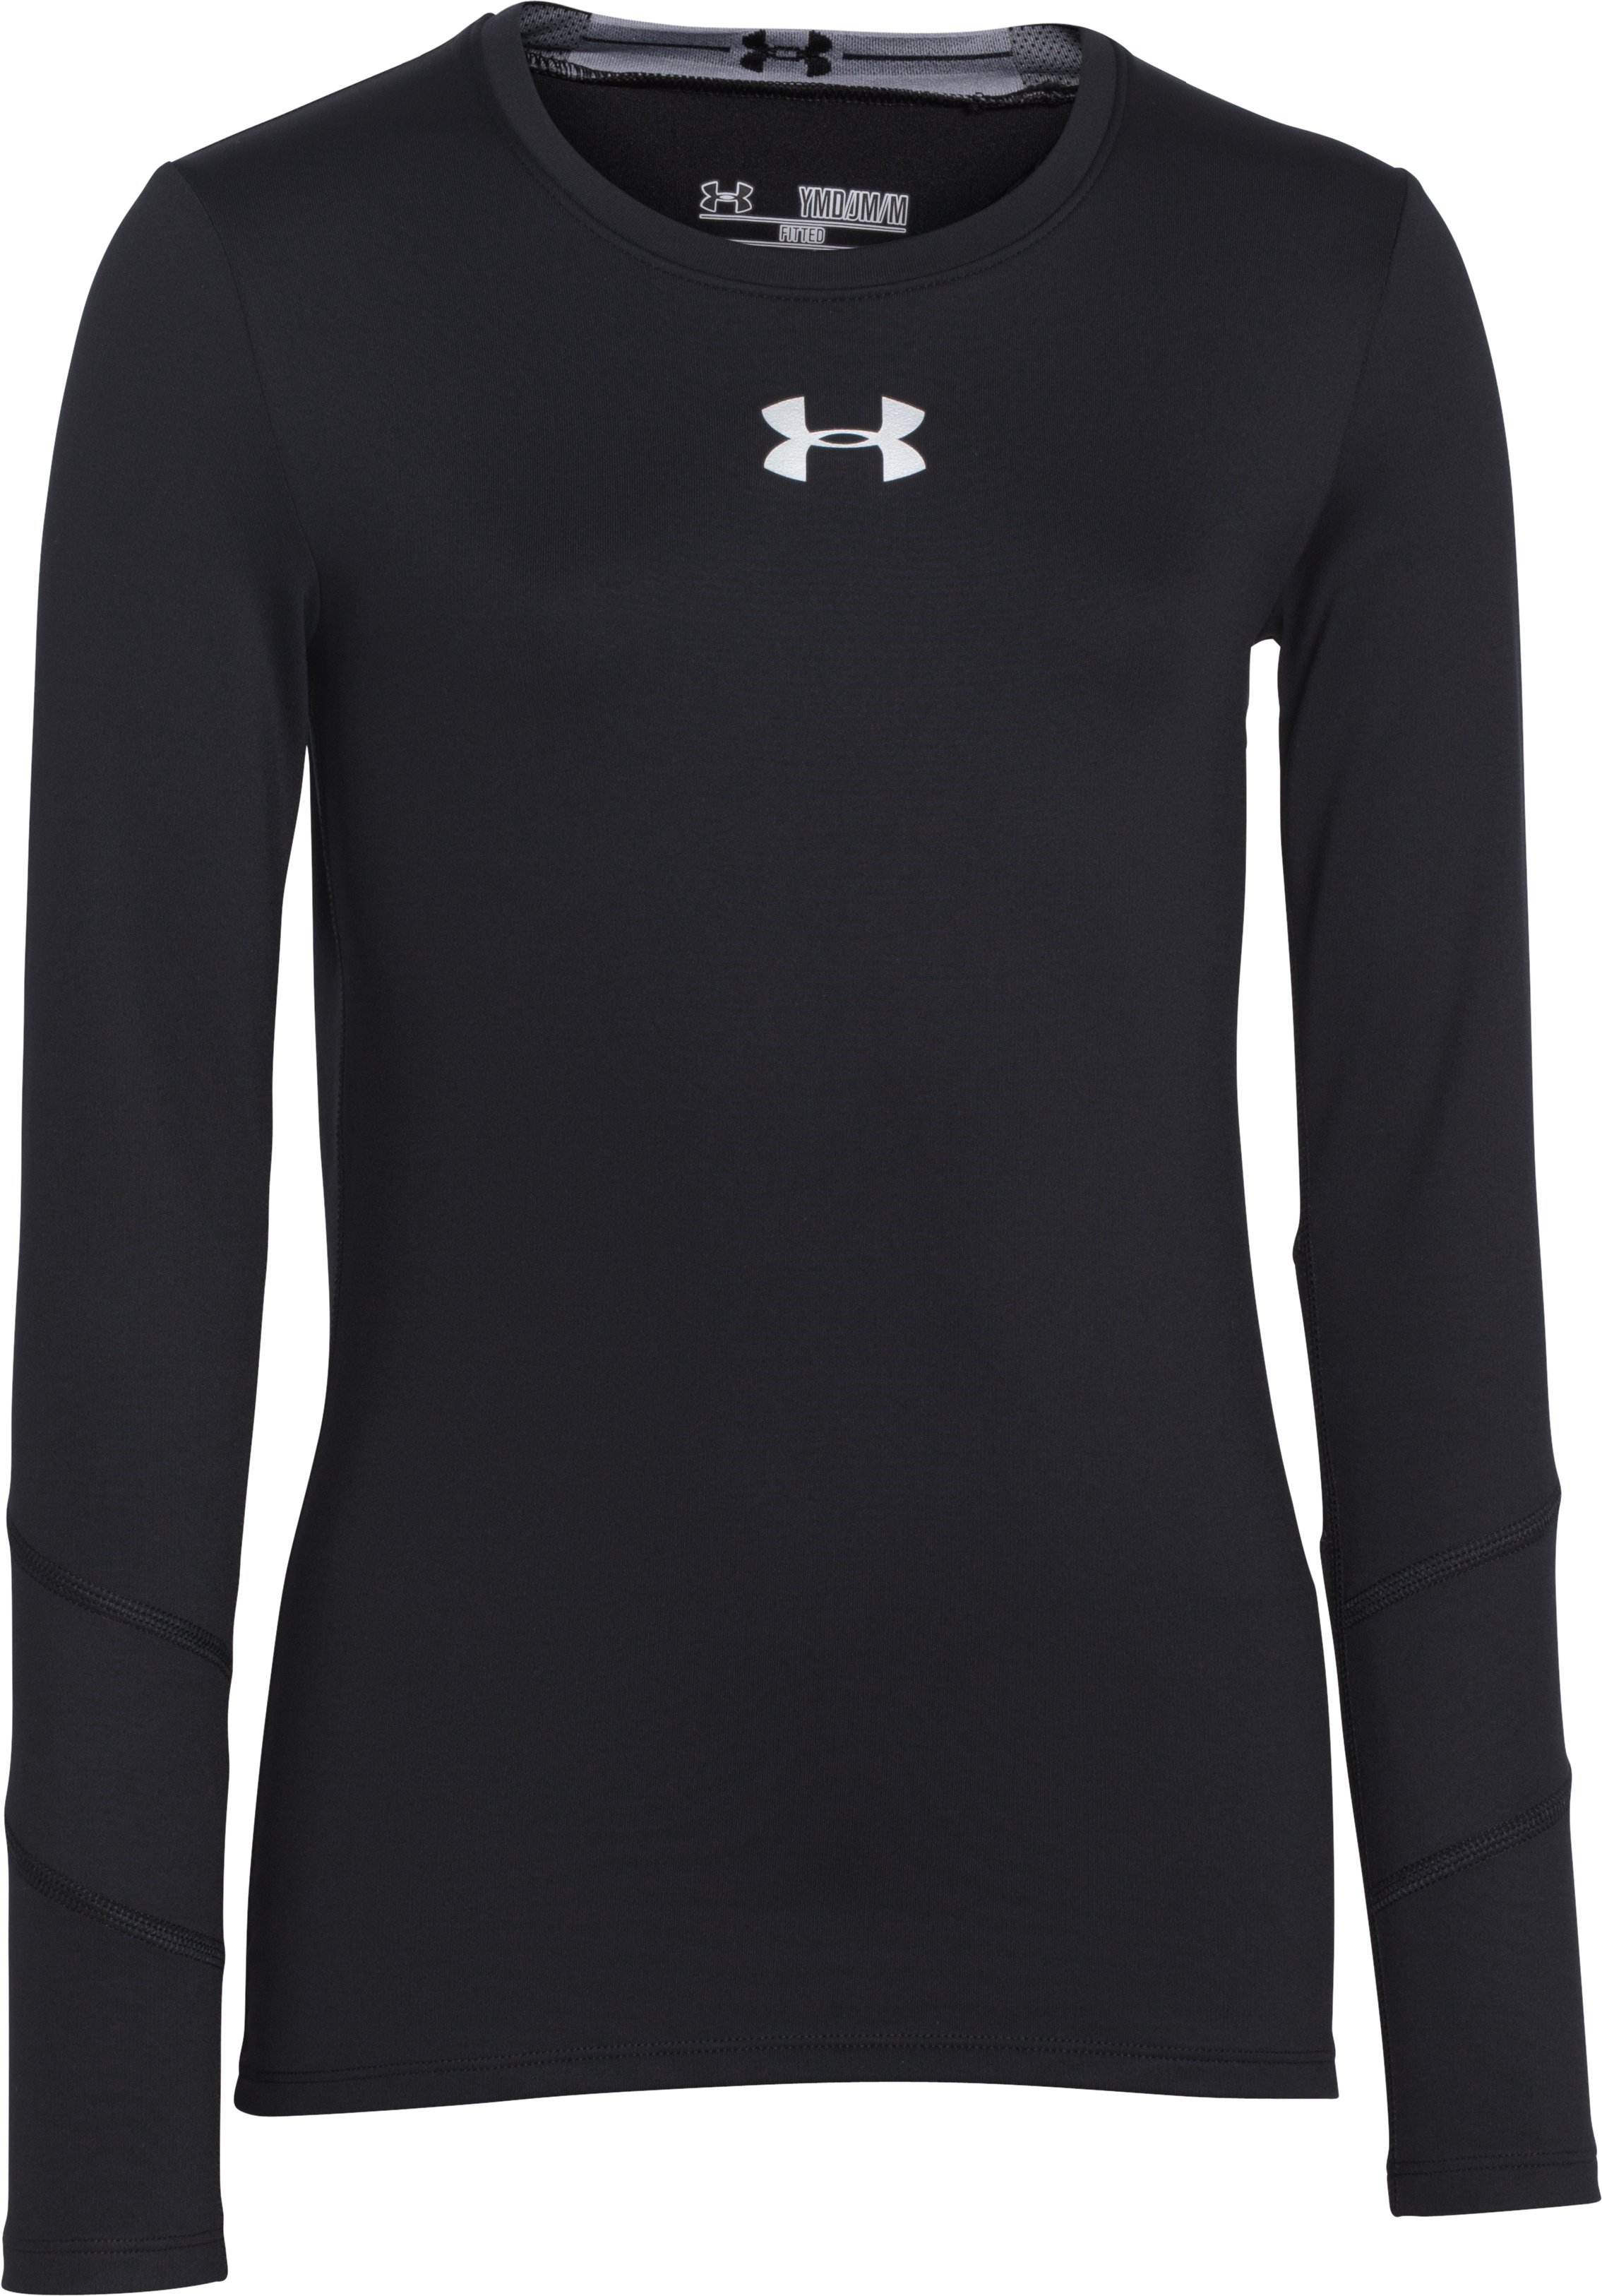 Girls' UA ColdGear® Long Sleeve, Black